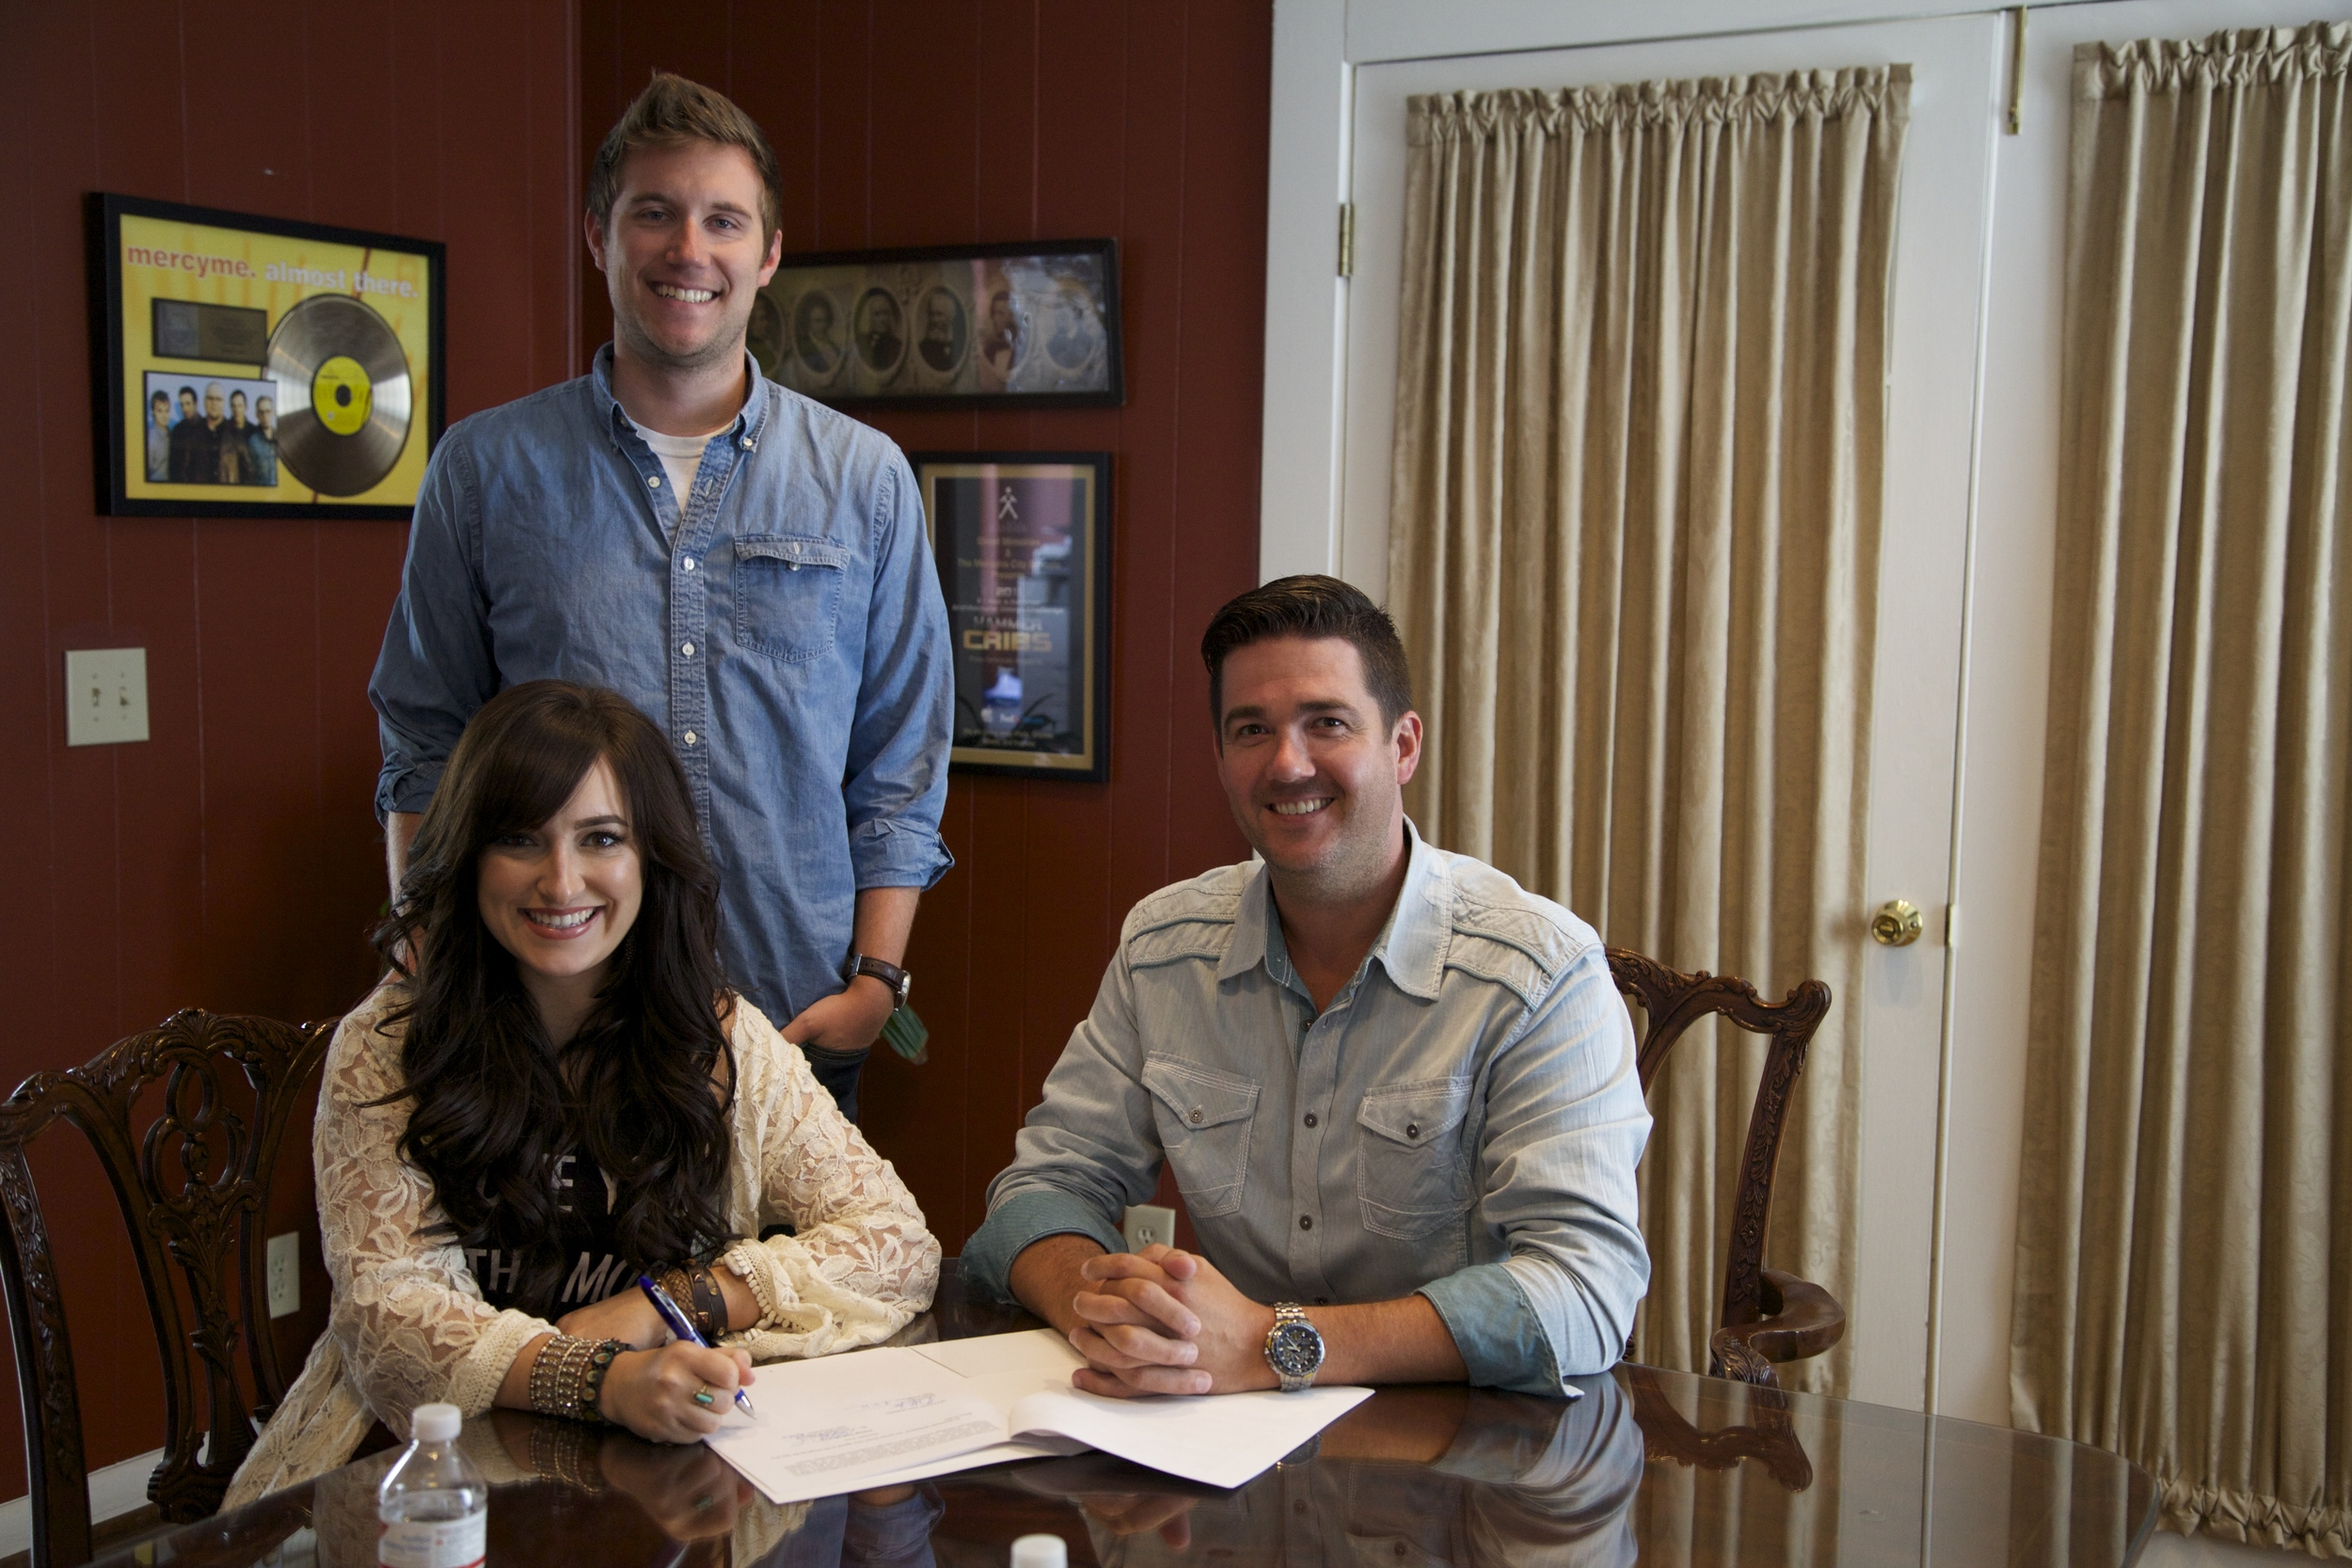 Pictured L-R: Briana Tyson, Chase Armstrong (Artist Development & Management), Chris Blair (Owner/President)